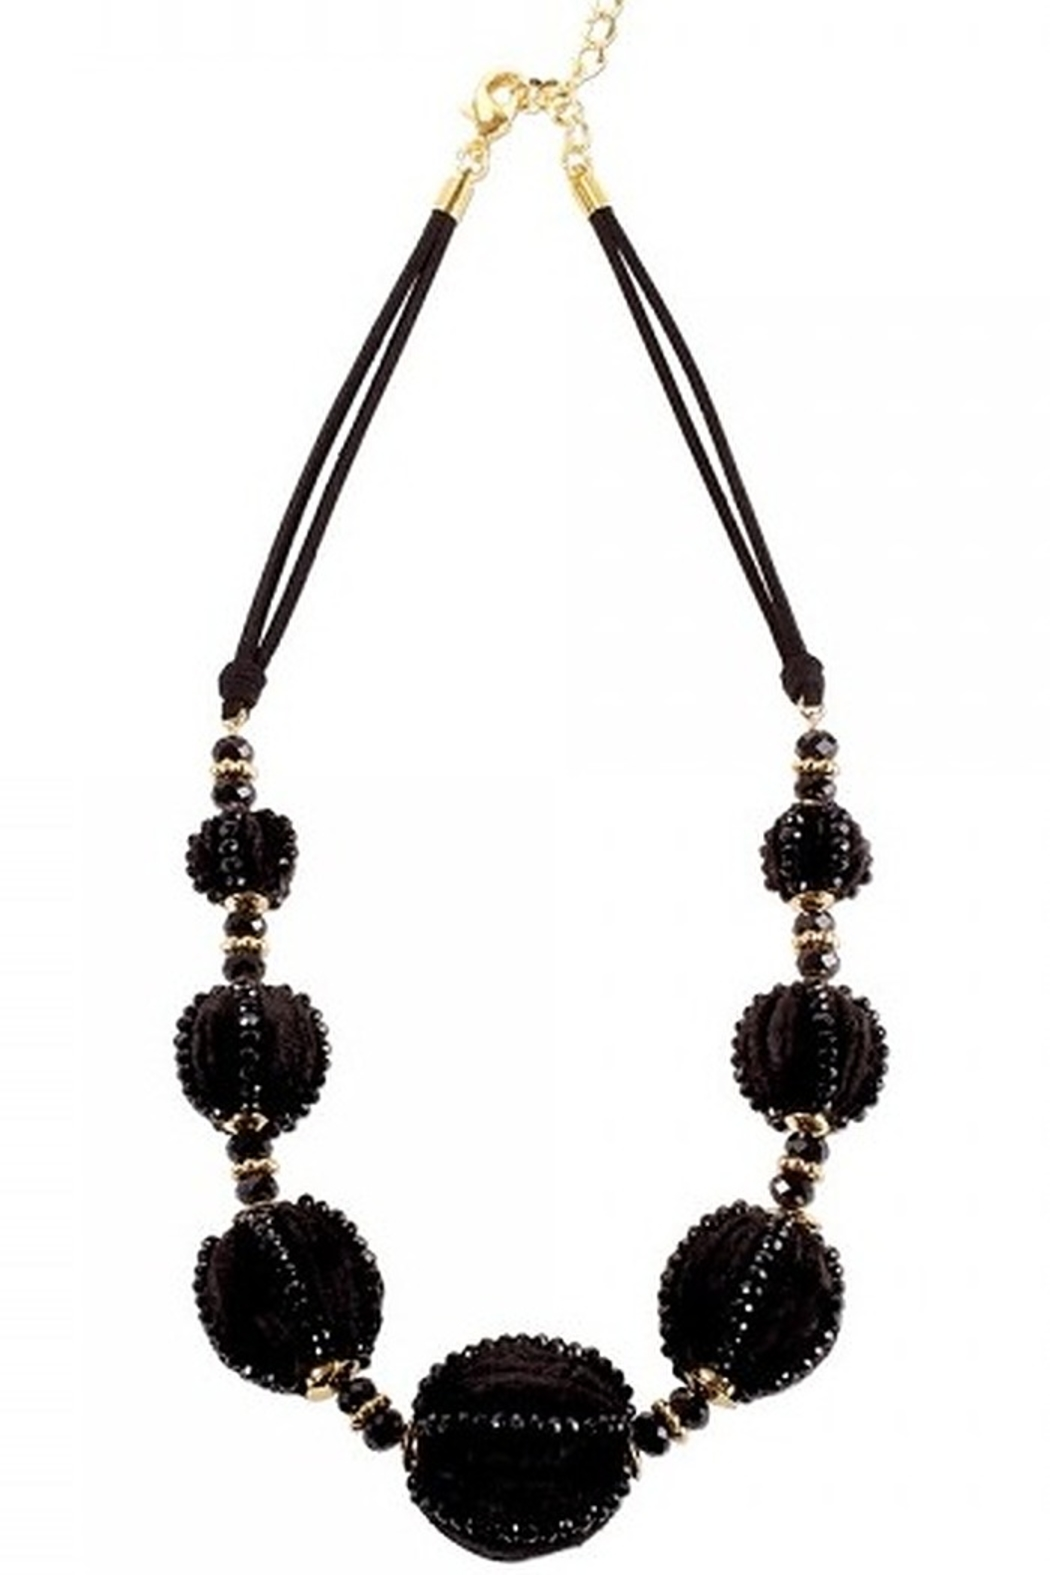 Periwinkle by Barlow BLACK VELVET BALLS WITH BEADS & GOLD TONE SPACERS - Main Image